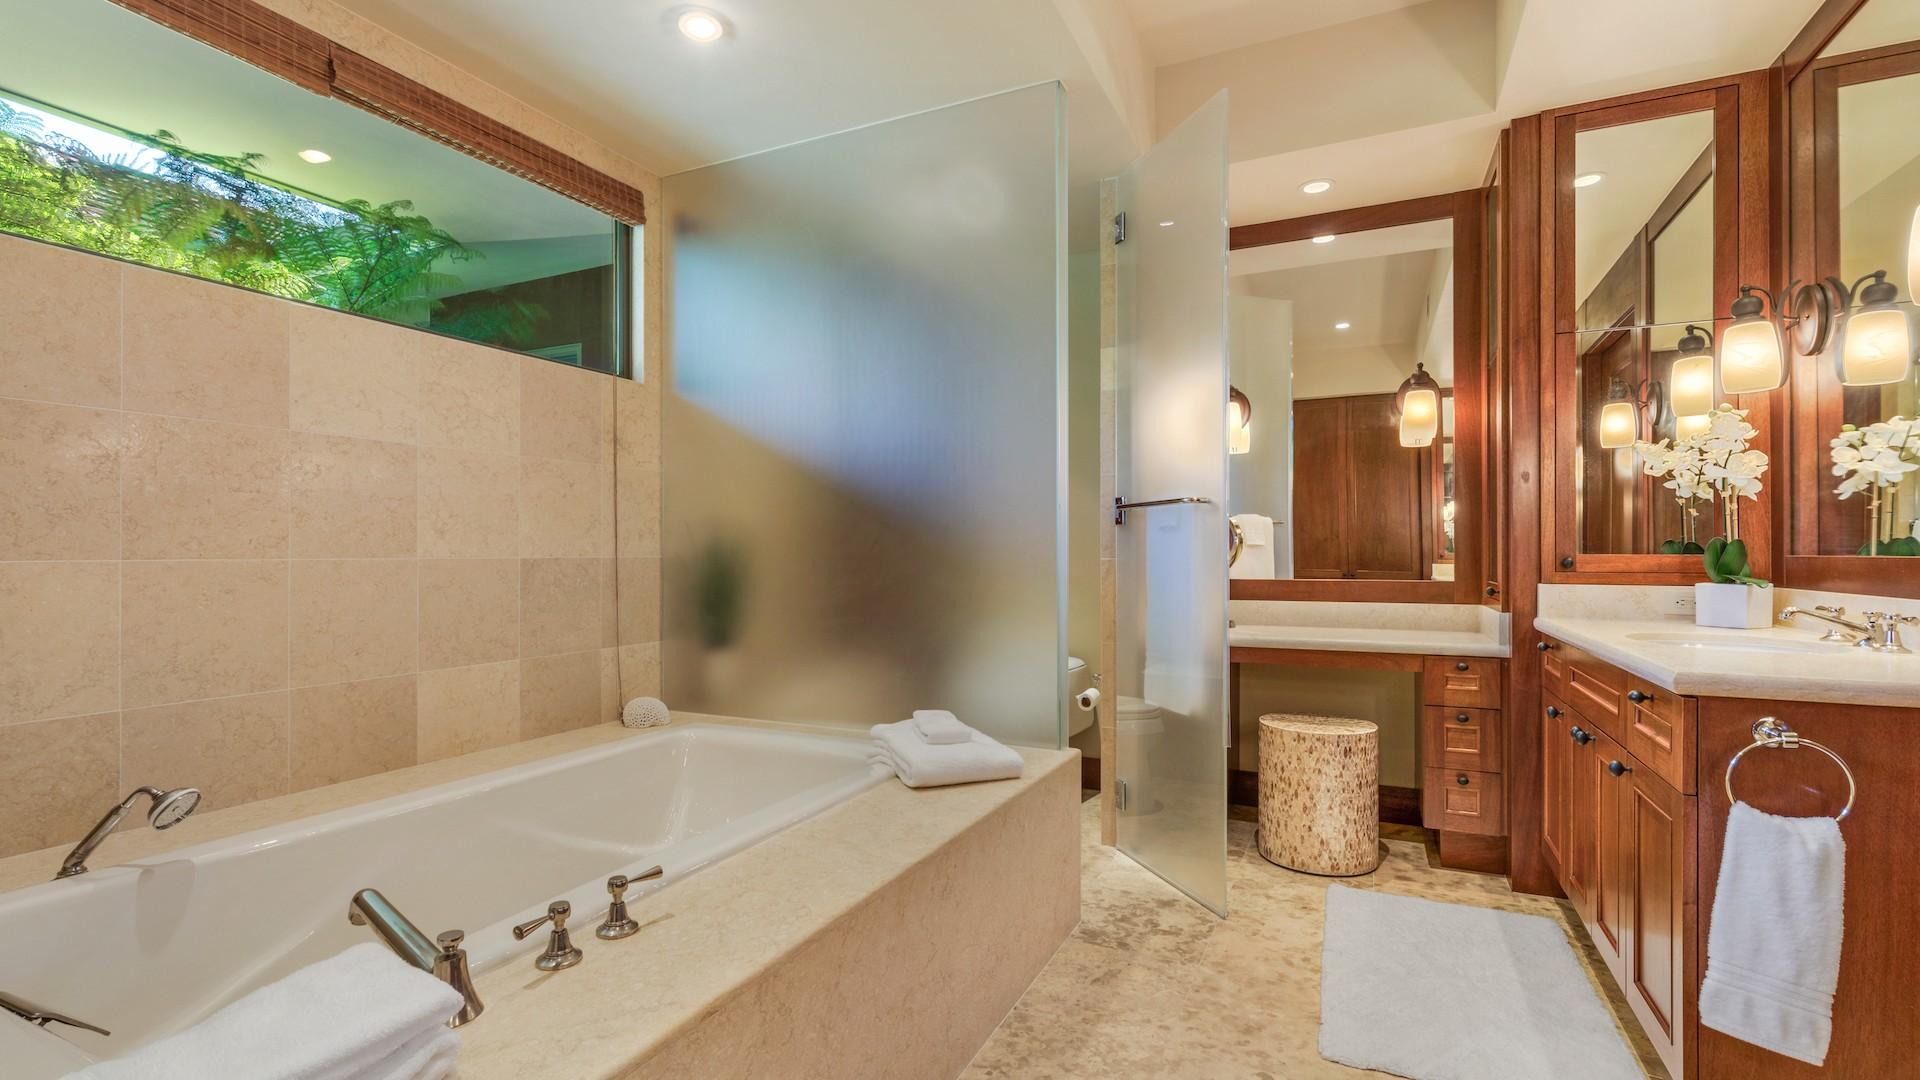 Master bath with oversized soaking tub and frosted privacy glass around the commode.